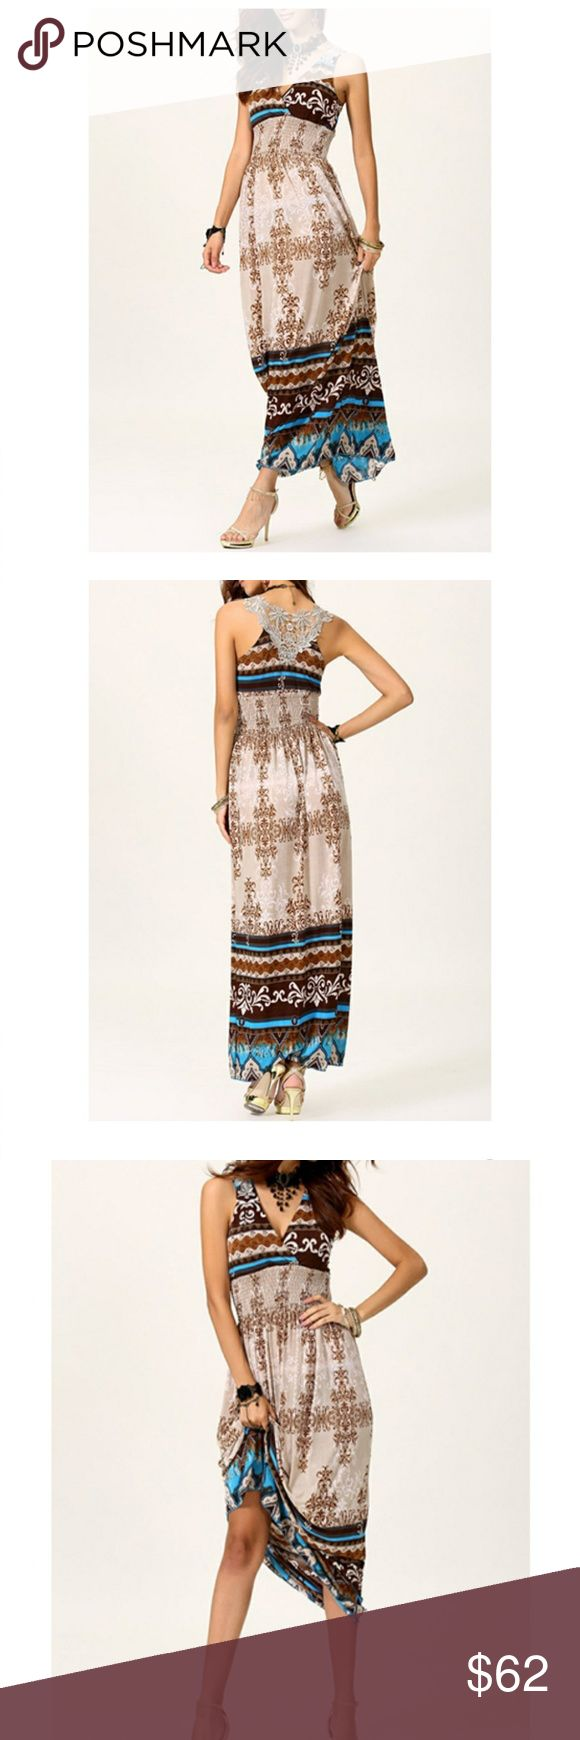 """Southwestern/Boho/Tribal Maxi Dress Beautiful sleeveless maxi dress in earth tones of blue and brown. Empire waist. Beautifully detailed with crochet inserts. One size fits all. Measurements taken lying flat: 52"""" from shoulder to hem. 19"""" from armpit to armpit. NWT. Still in package. Smoke free/pet free home. No trades. I only deal through Poshmark. MAGNOLIA BOUTIQUE Dresses Maxi"""